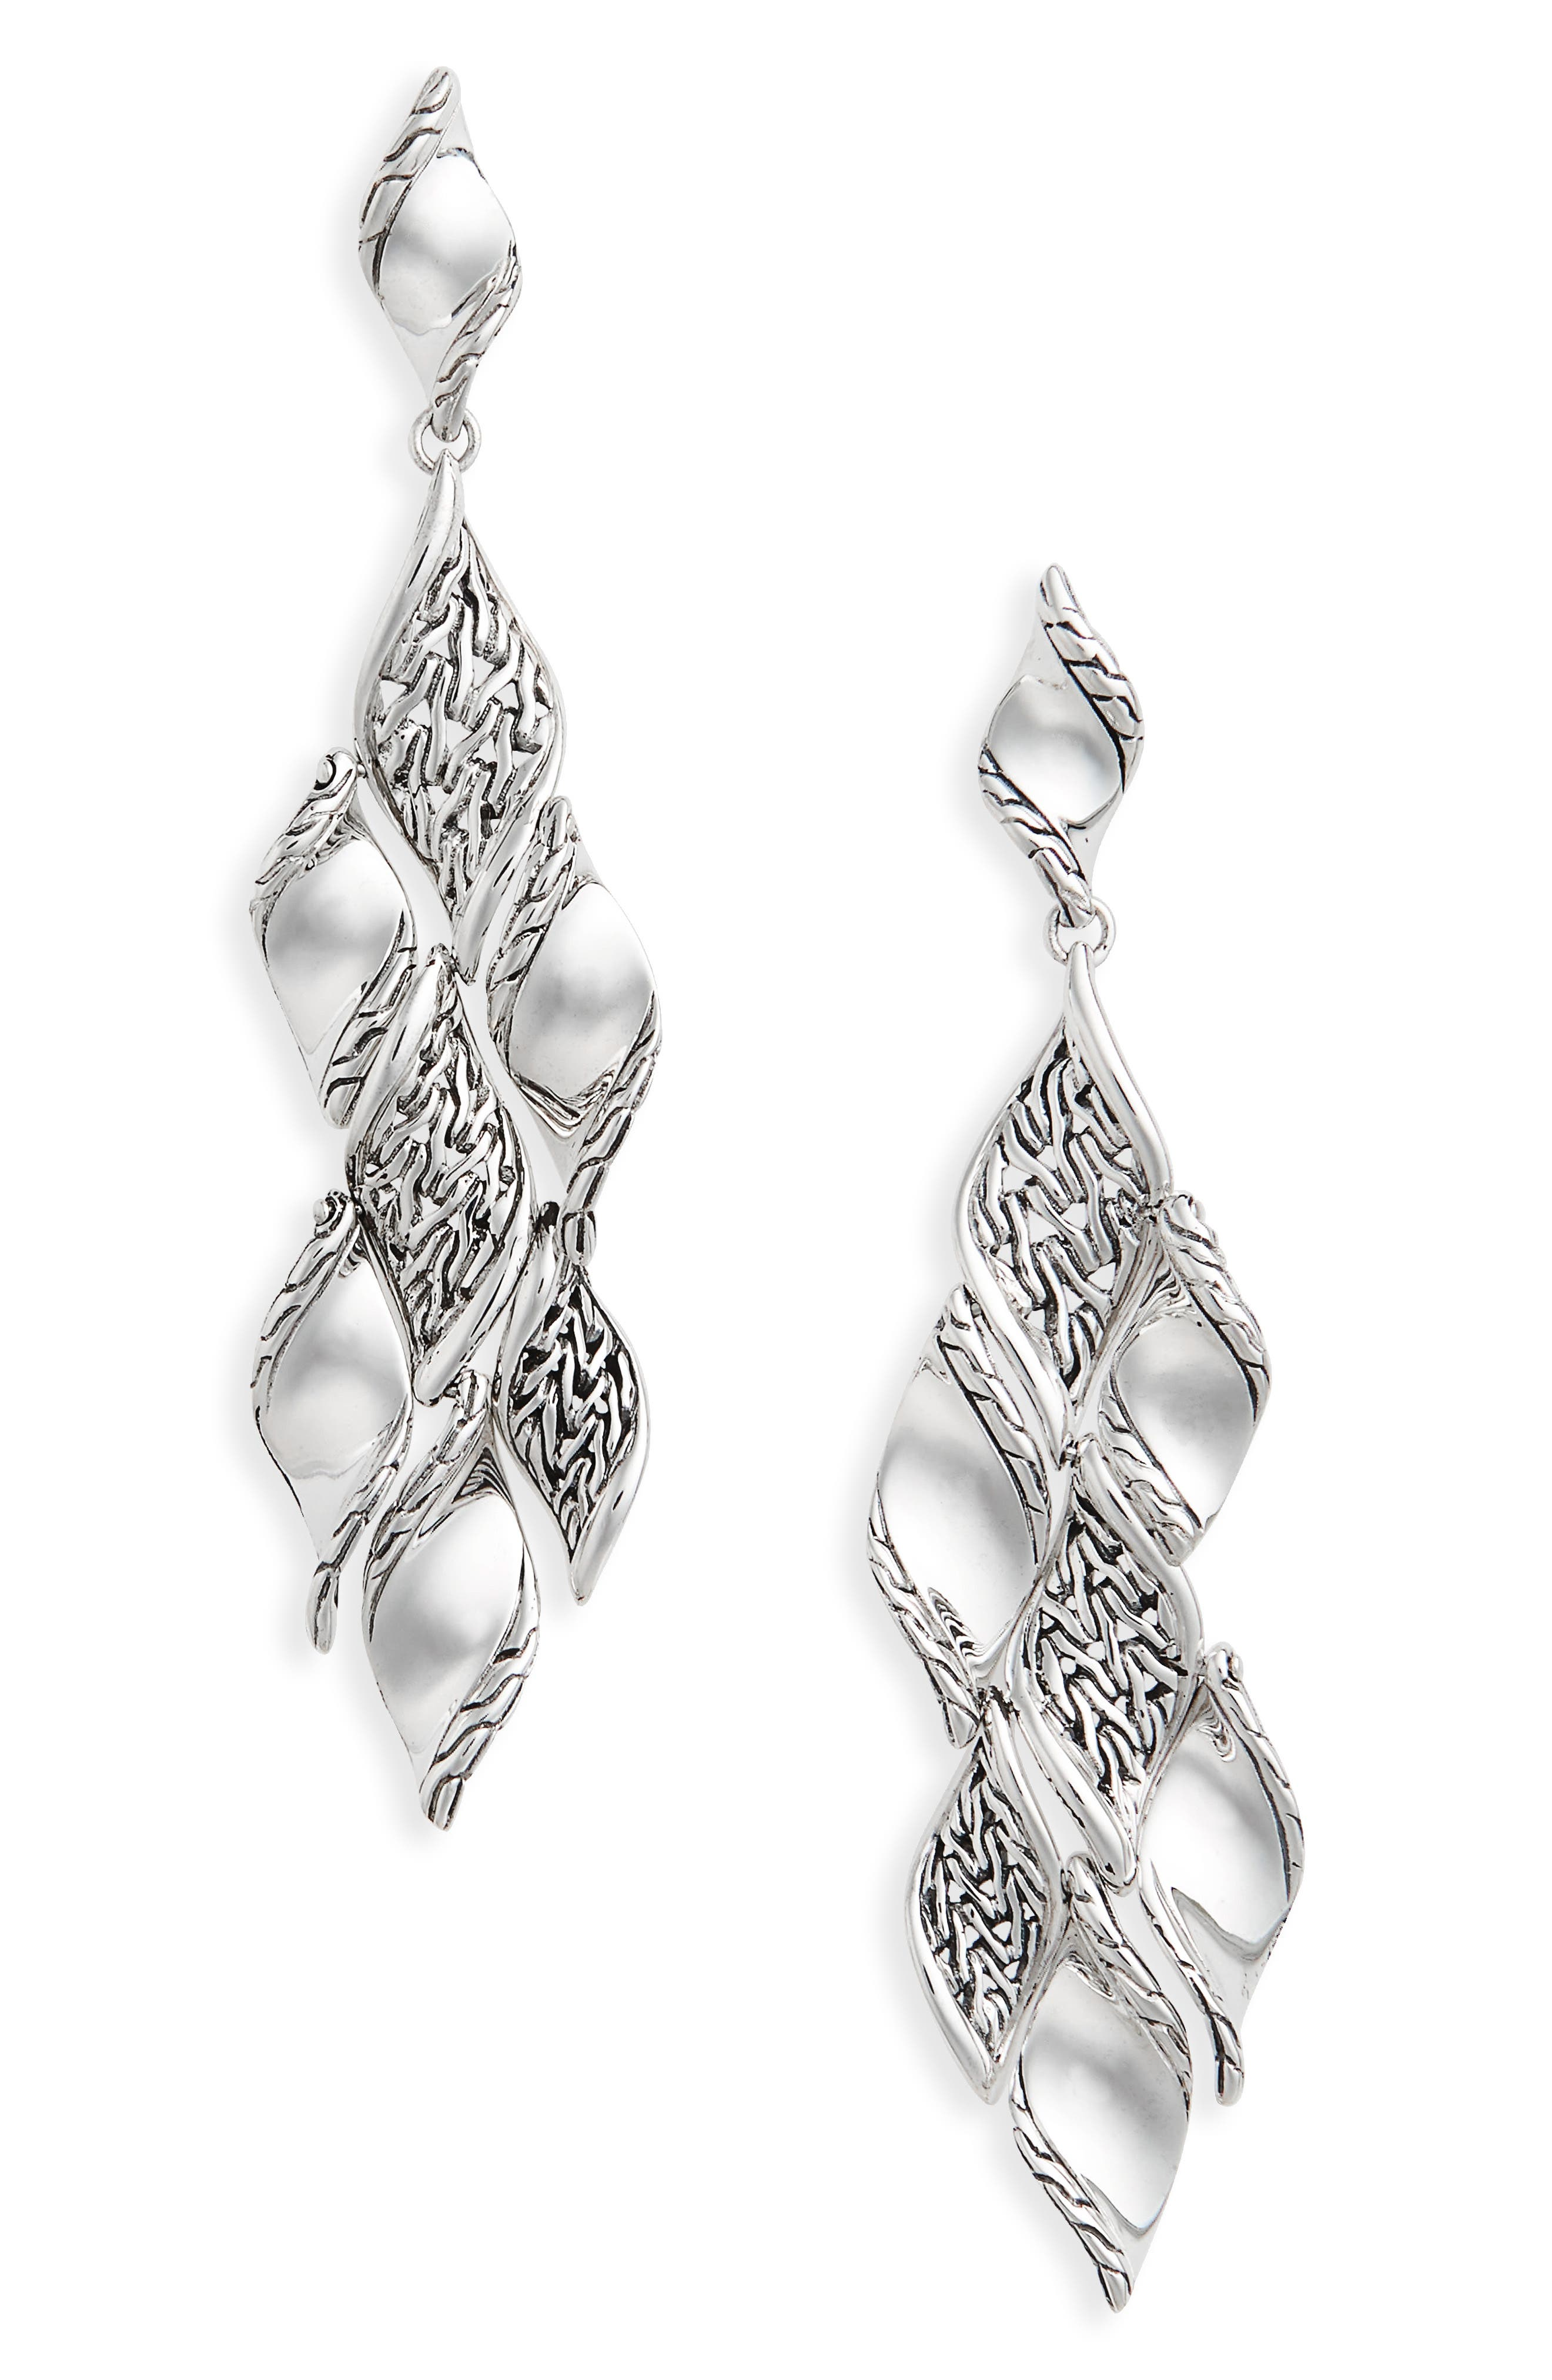 Classic Wave Silver Drop Earrings,                         Main,                         color, Silver